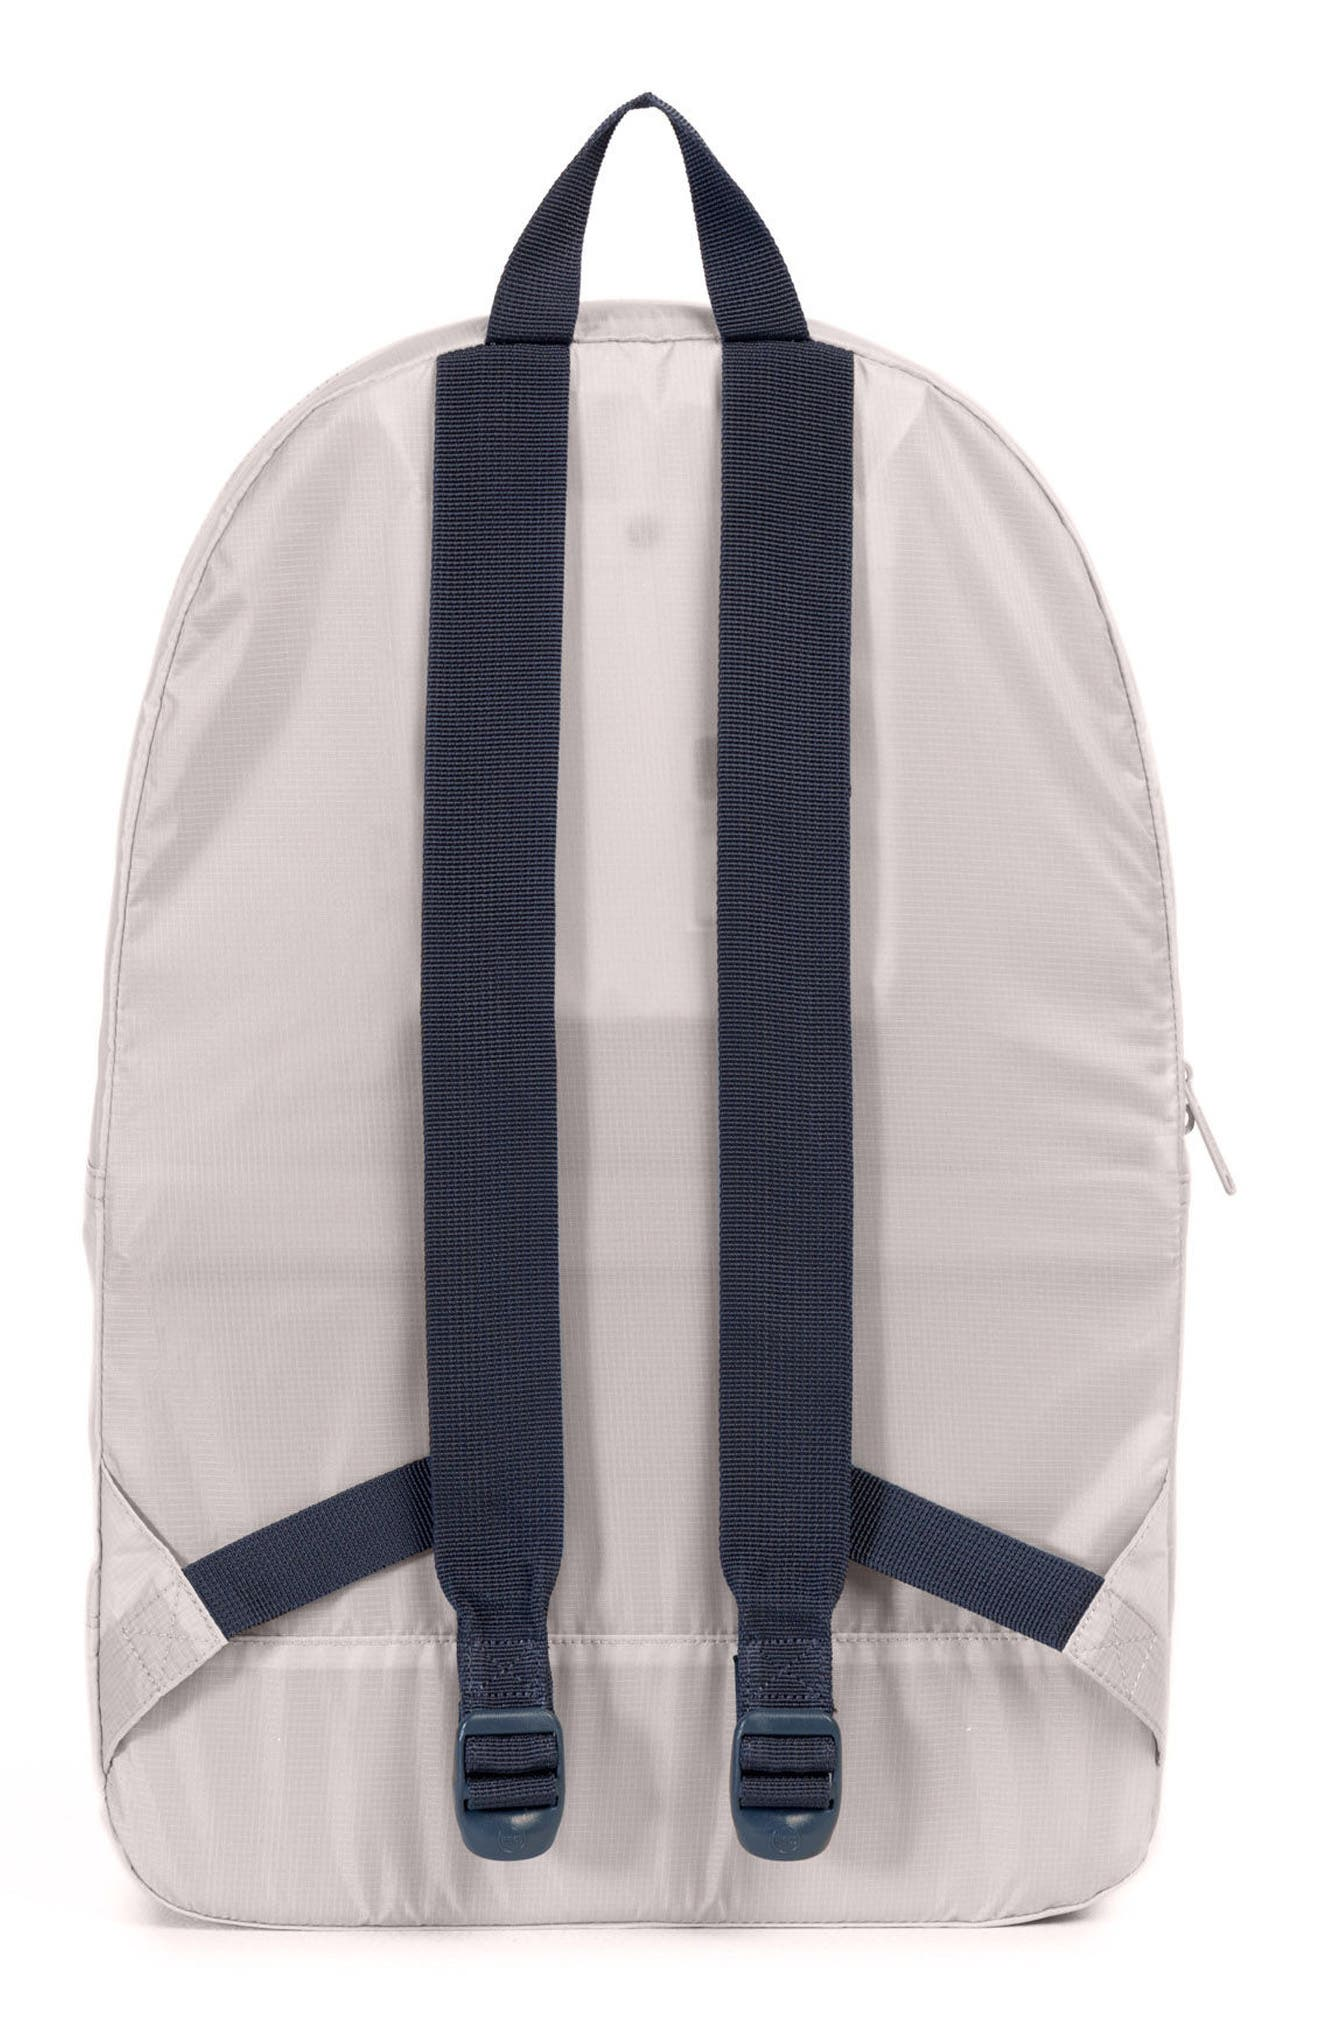 Packable - MLB National League Backpack,                             Alternate thumbnail 2, color,                             MILWAUKEE BREWERS